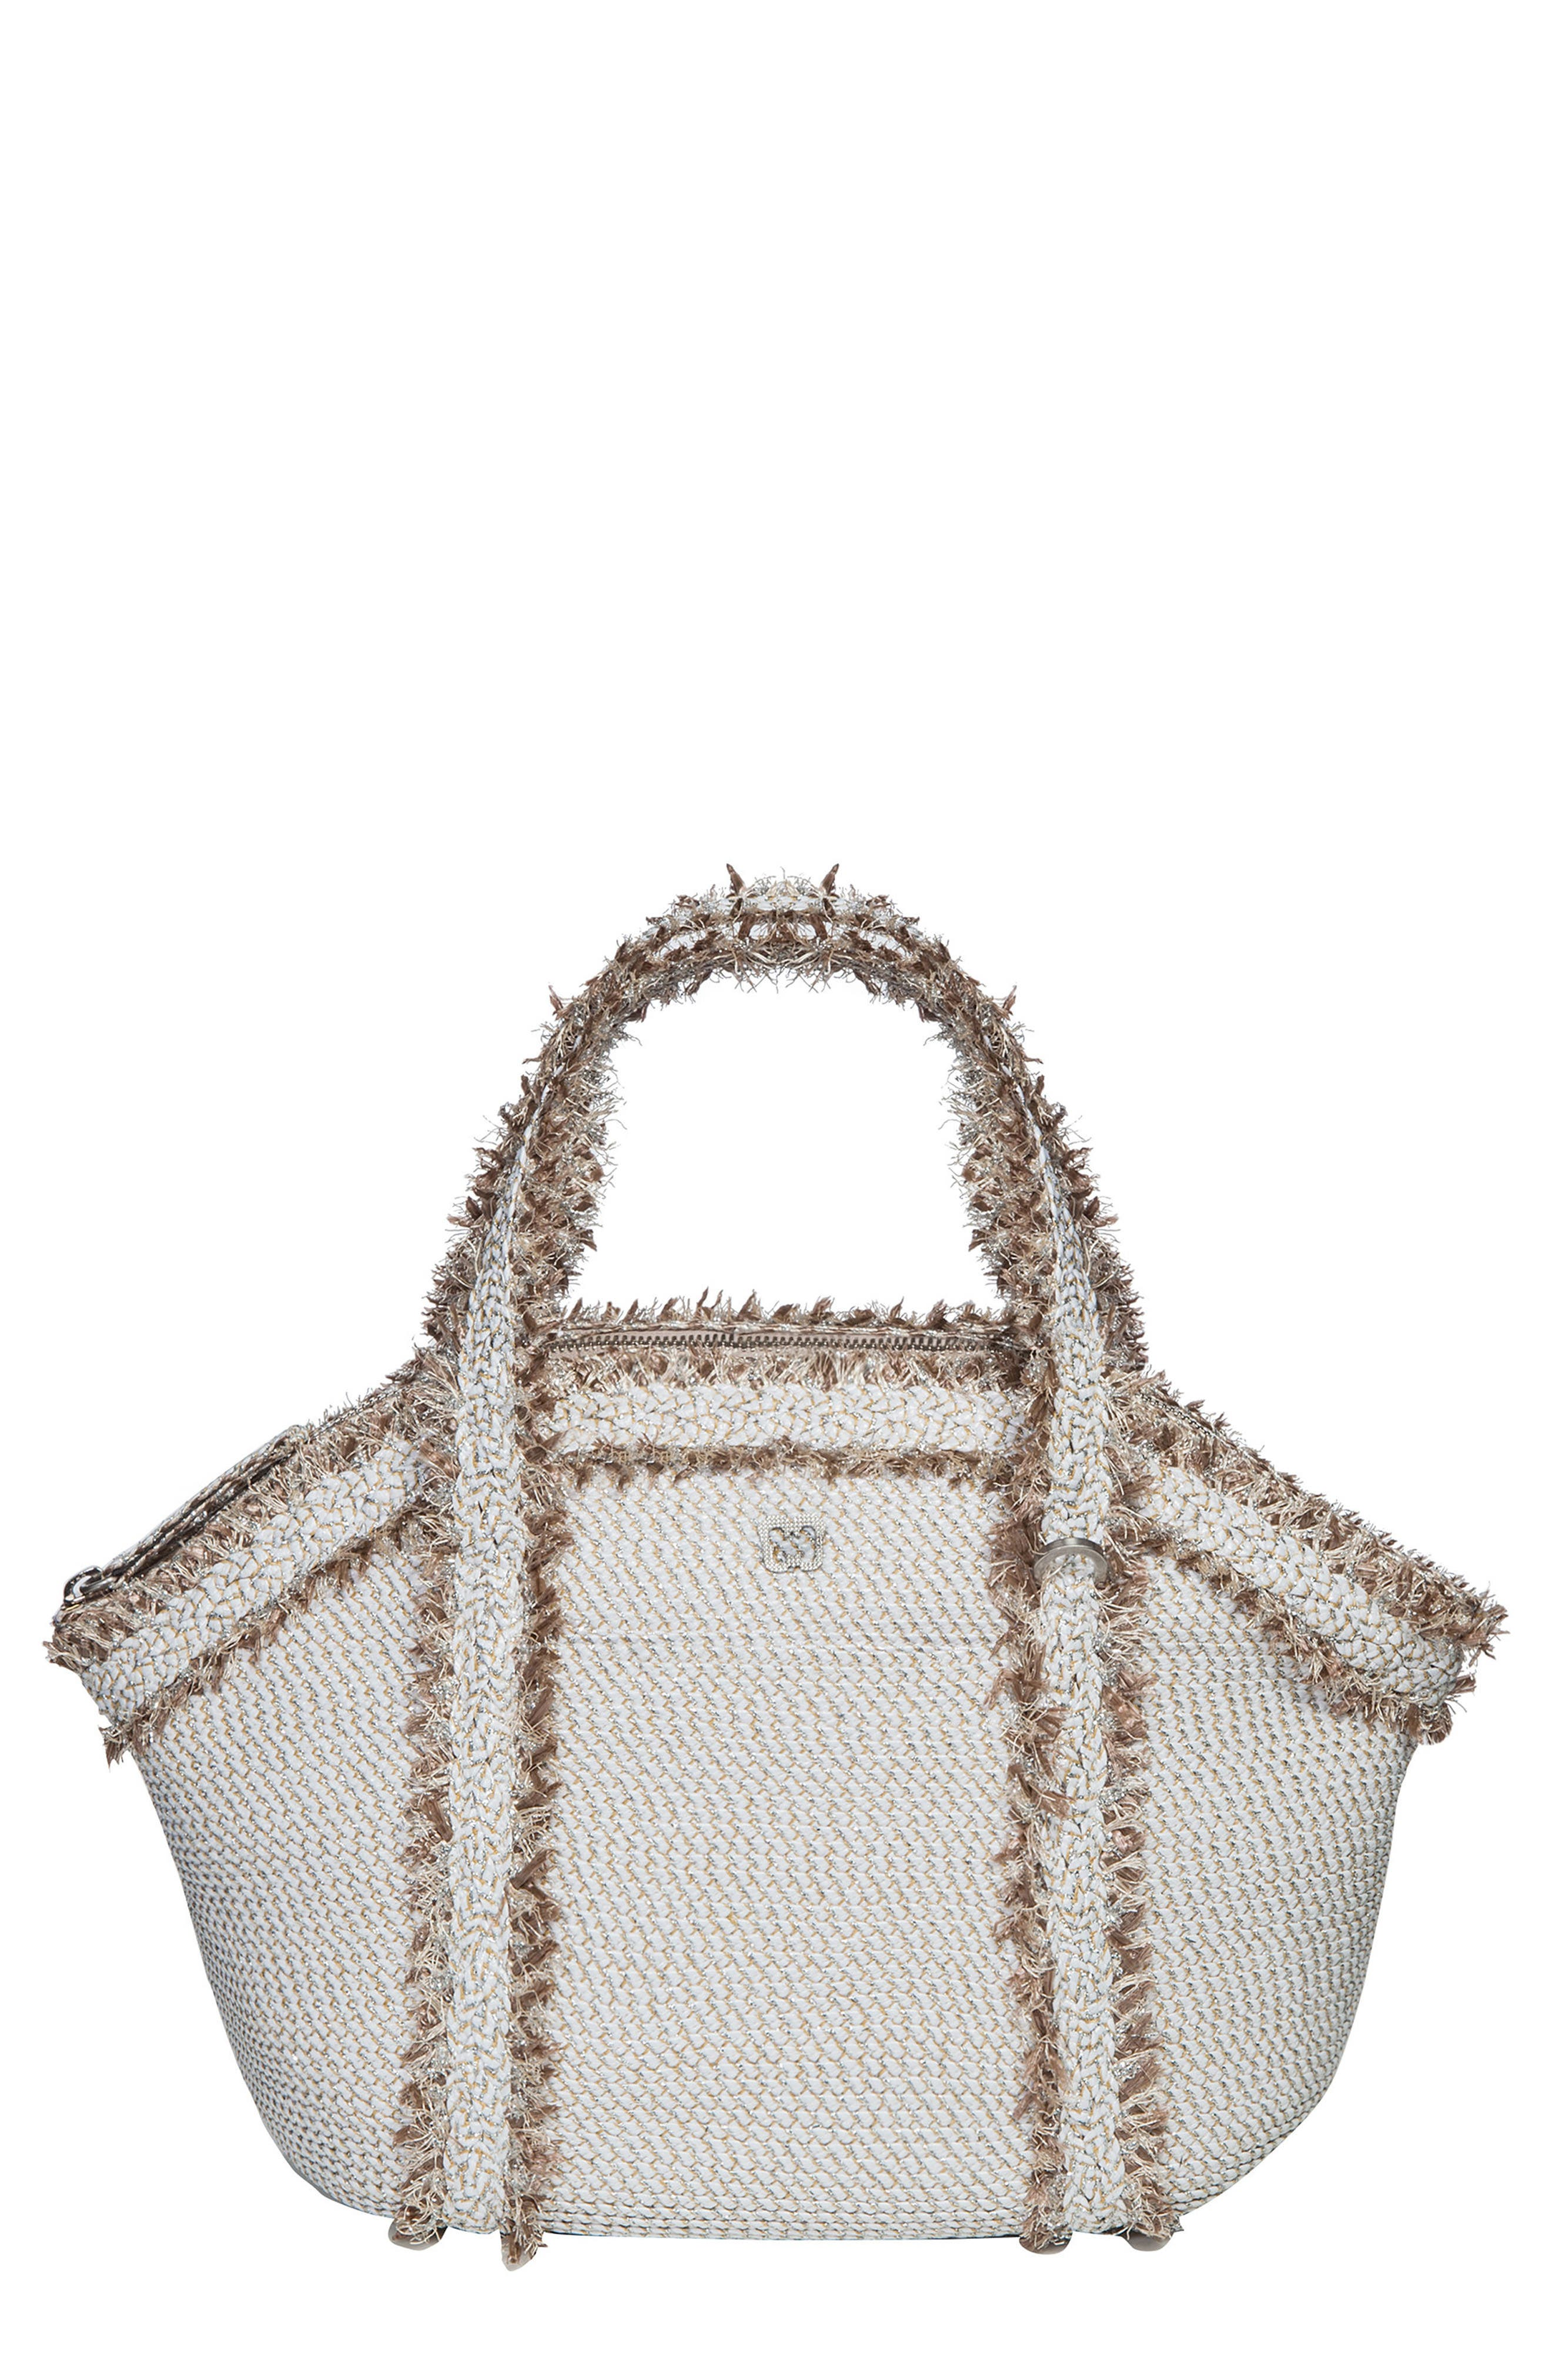 Covet Squishee<sup>®</sup> Satchel,                             Main thumbnail 1, color,                             Ice